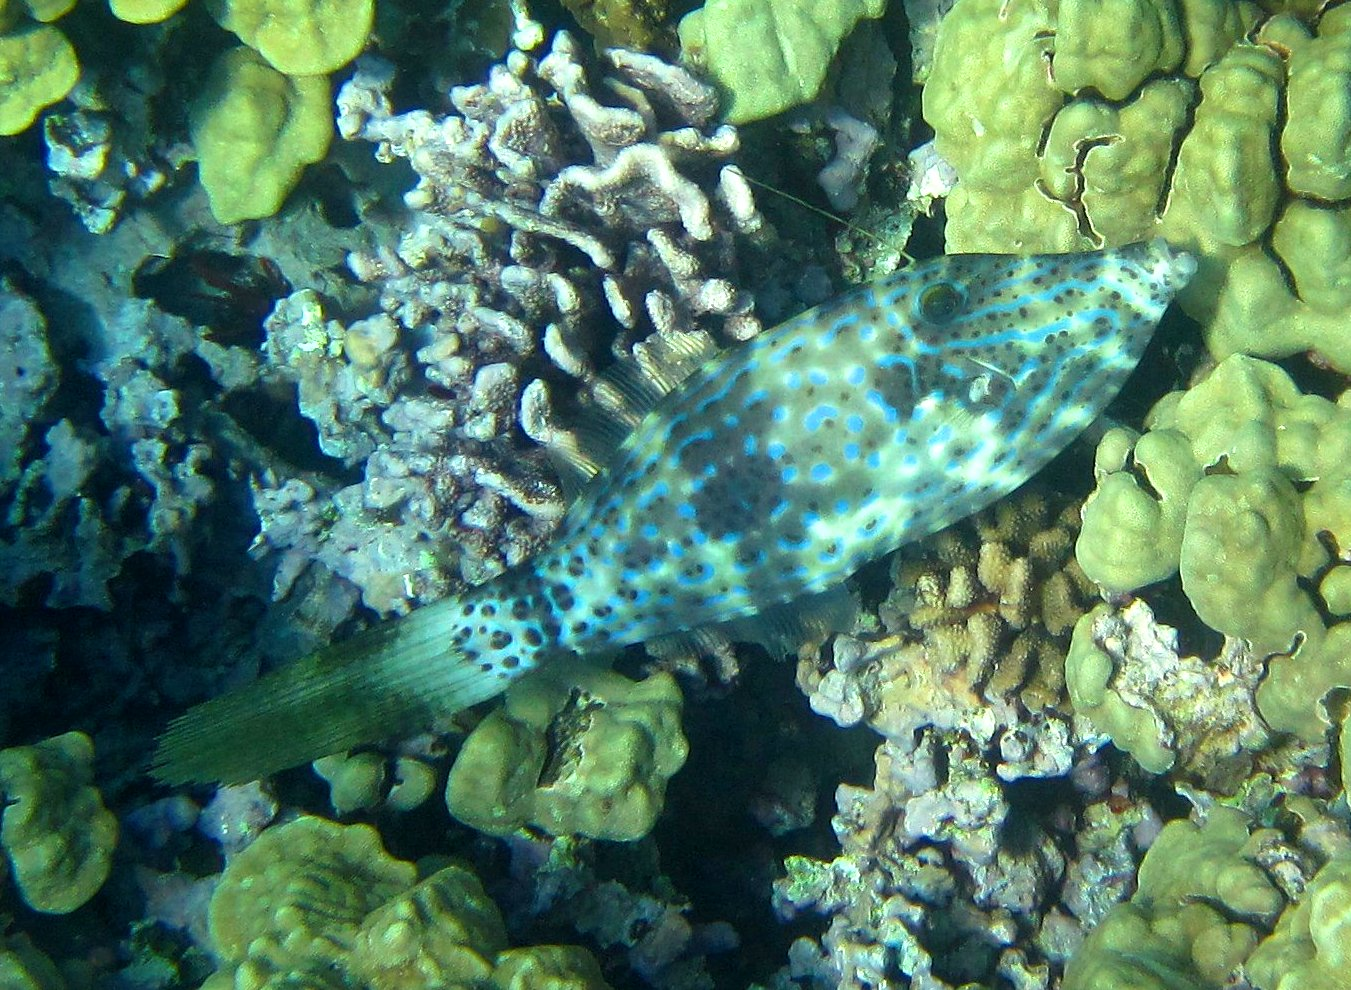 a study of race by jeffrey m fish Jeffrey m leis and mark i mccormick  ferences in study species, coral reef fish  research can  would swim the 100-m race in 36 seconds the olympic.